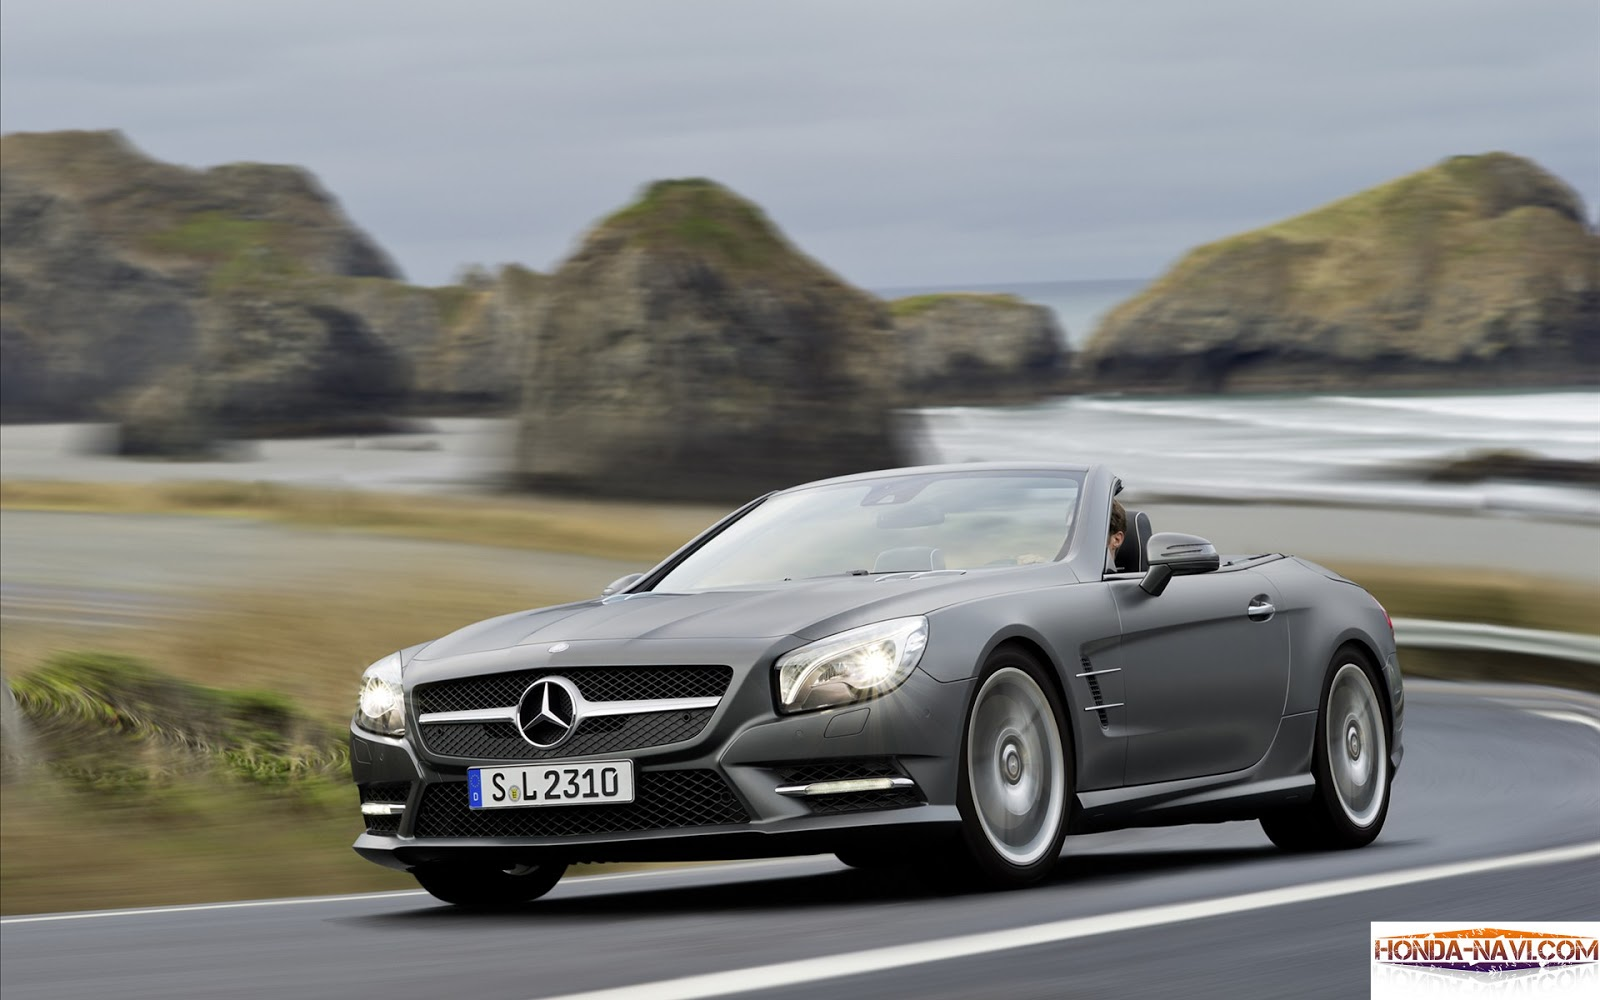 http://4.bp.blogspot.com/-TUX0-ZQERxs/UTAWzVXm14I/AAAAAAAAAUM/qZEqqgNr_4s/s1600/2013-mercedes-benz-sl-class-hd-widescreen-desktop-wallpaper-background-1920px_03.jpg